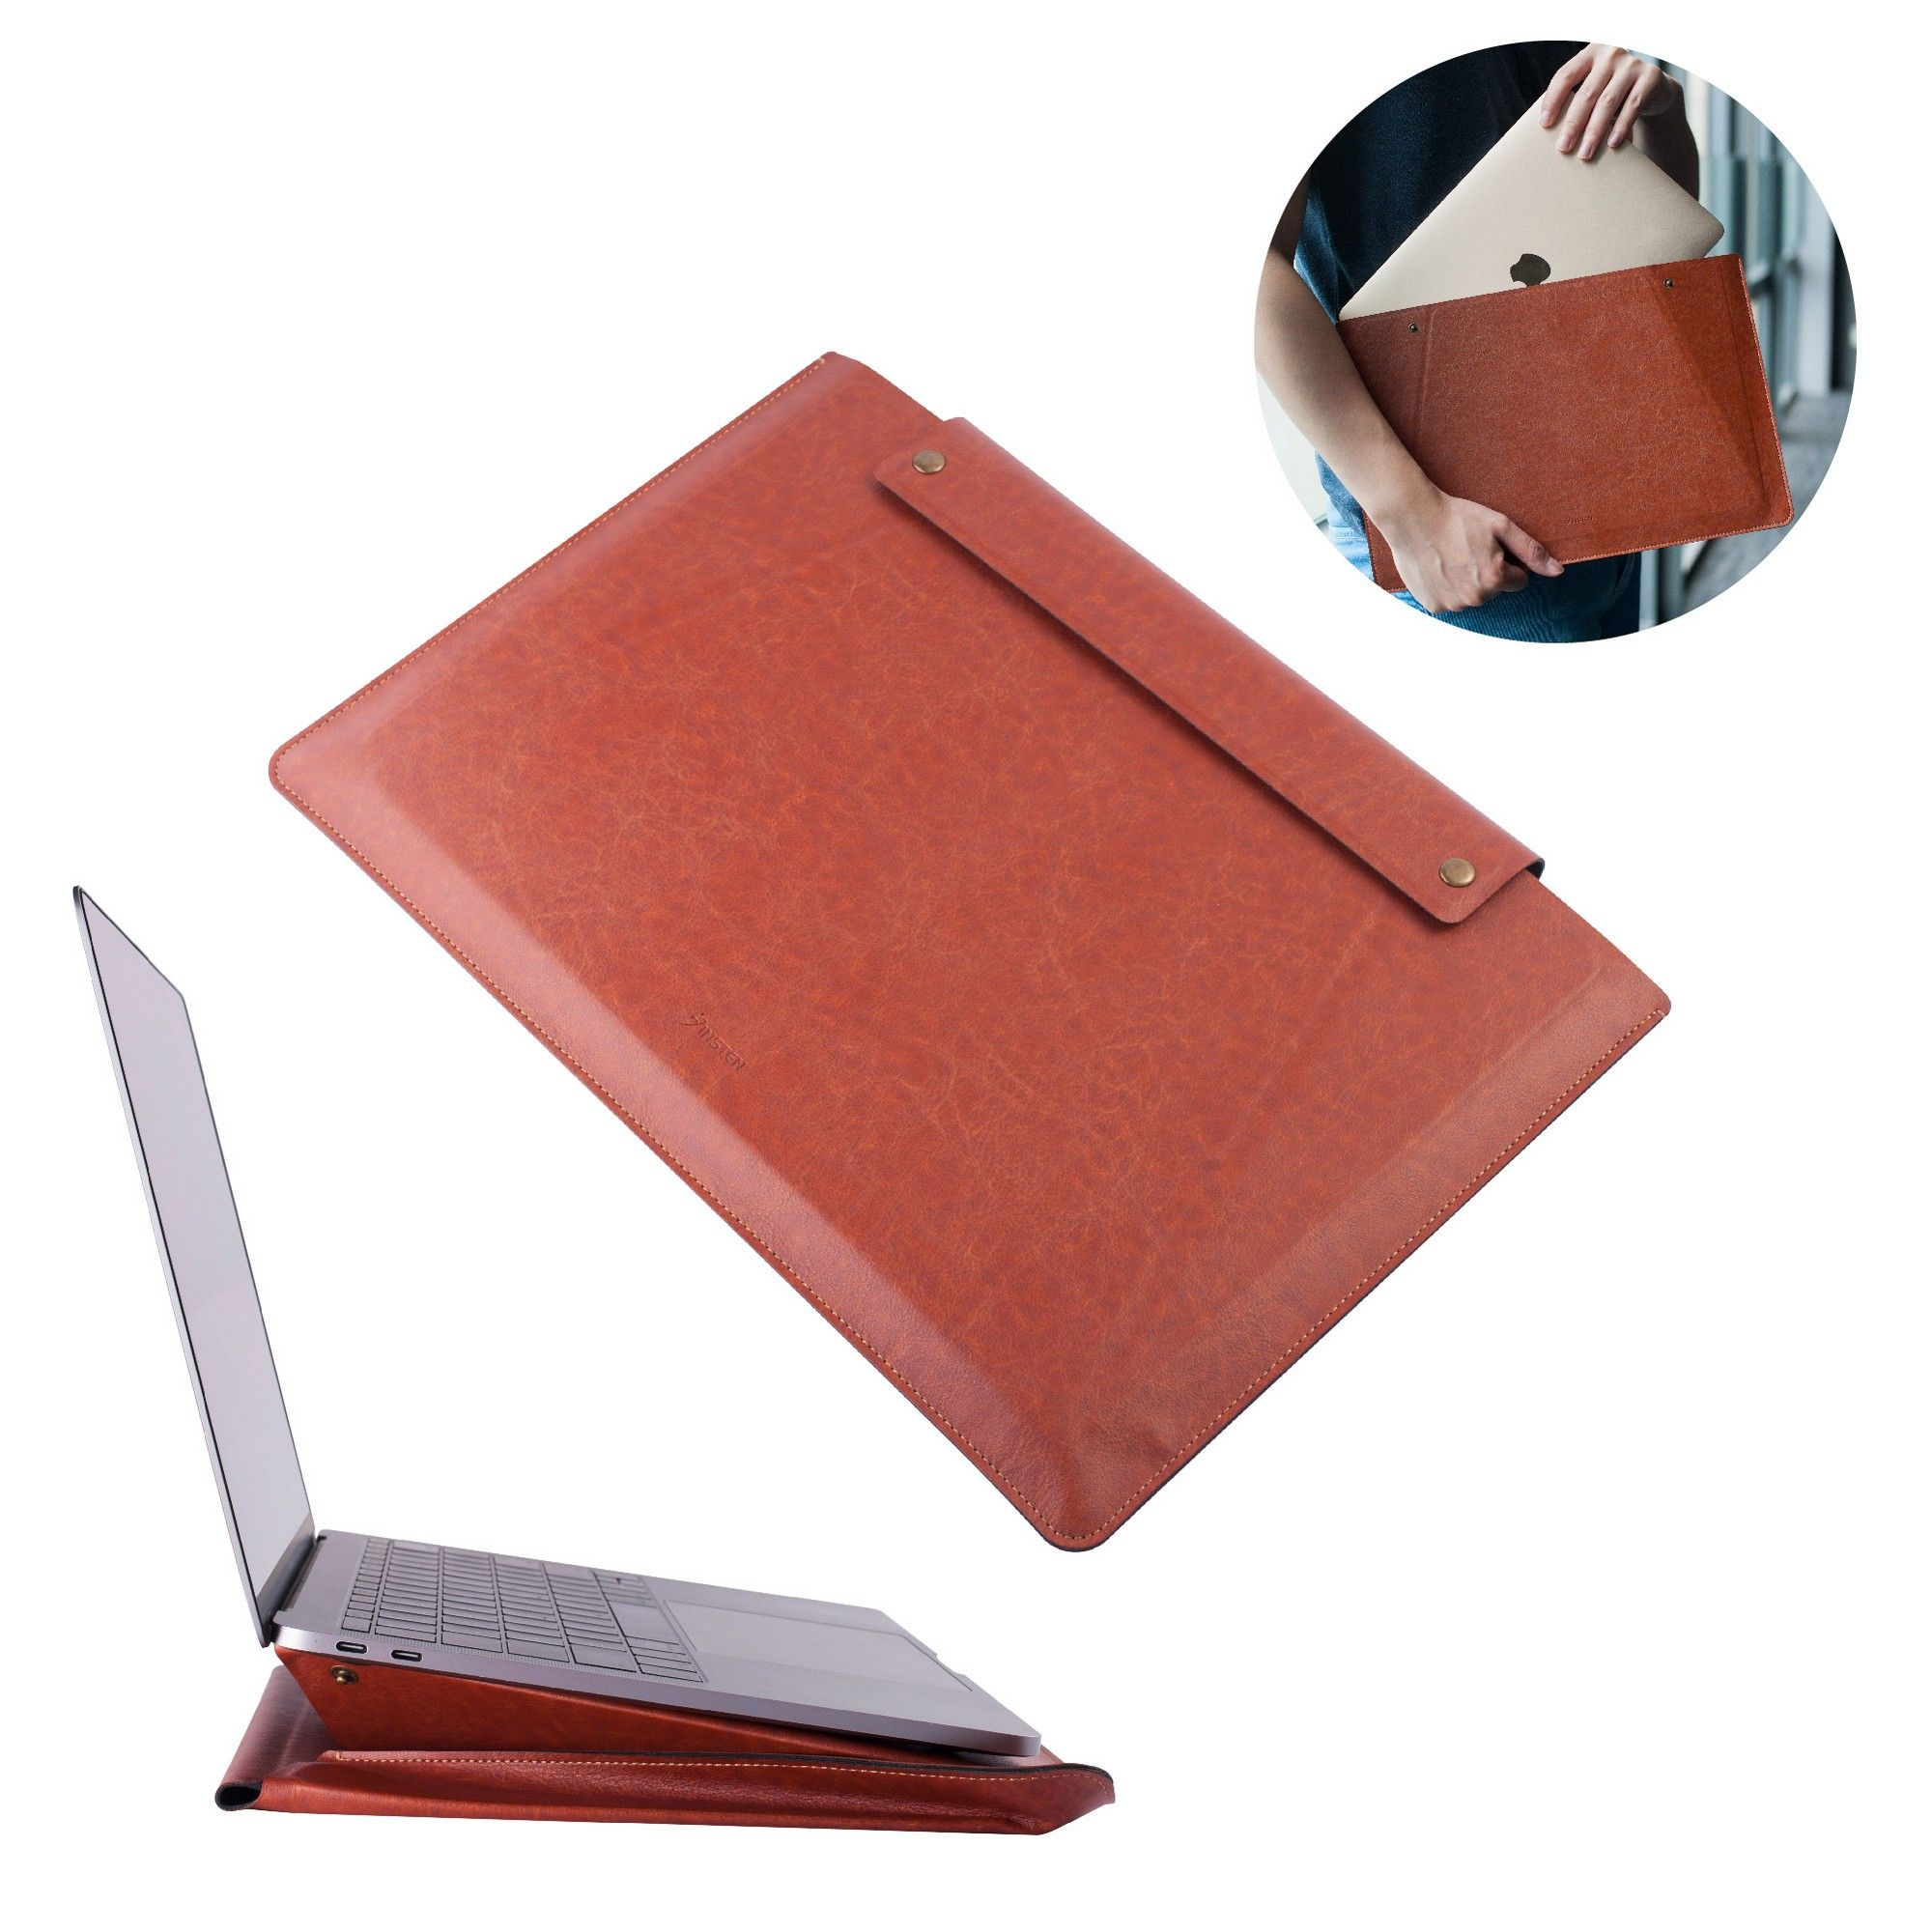 "Insten PU Leather Pouch Sleeve Bag Case Cover w/Stand for 13.3"" Apple MacBook Laptop Notebook Tablet Device - Brown"